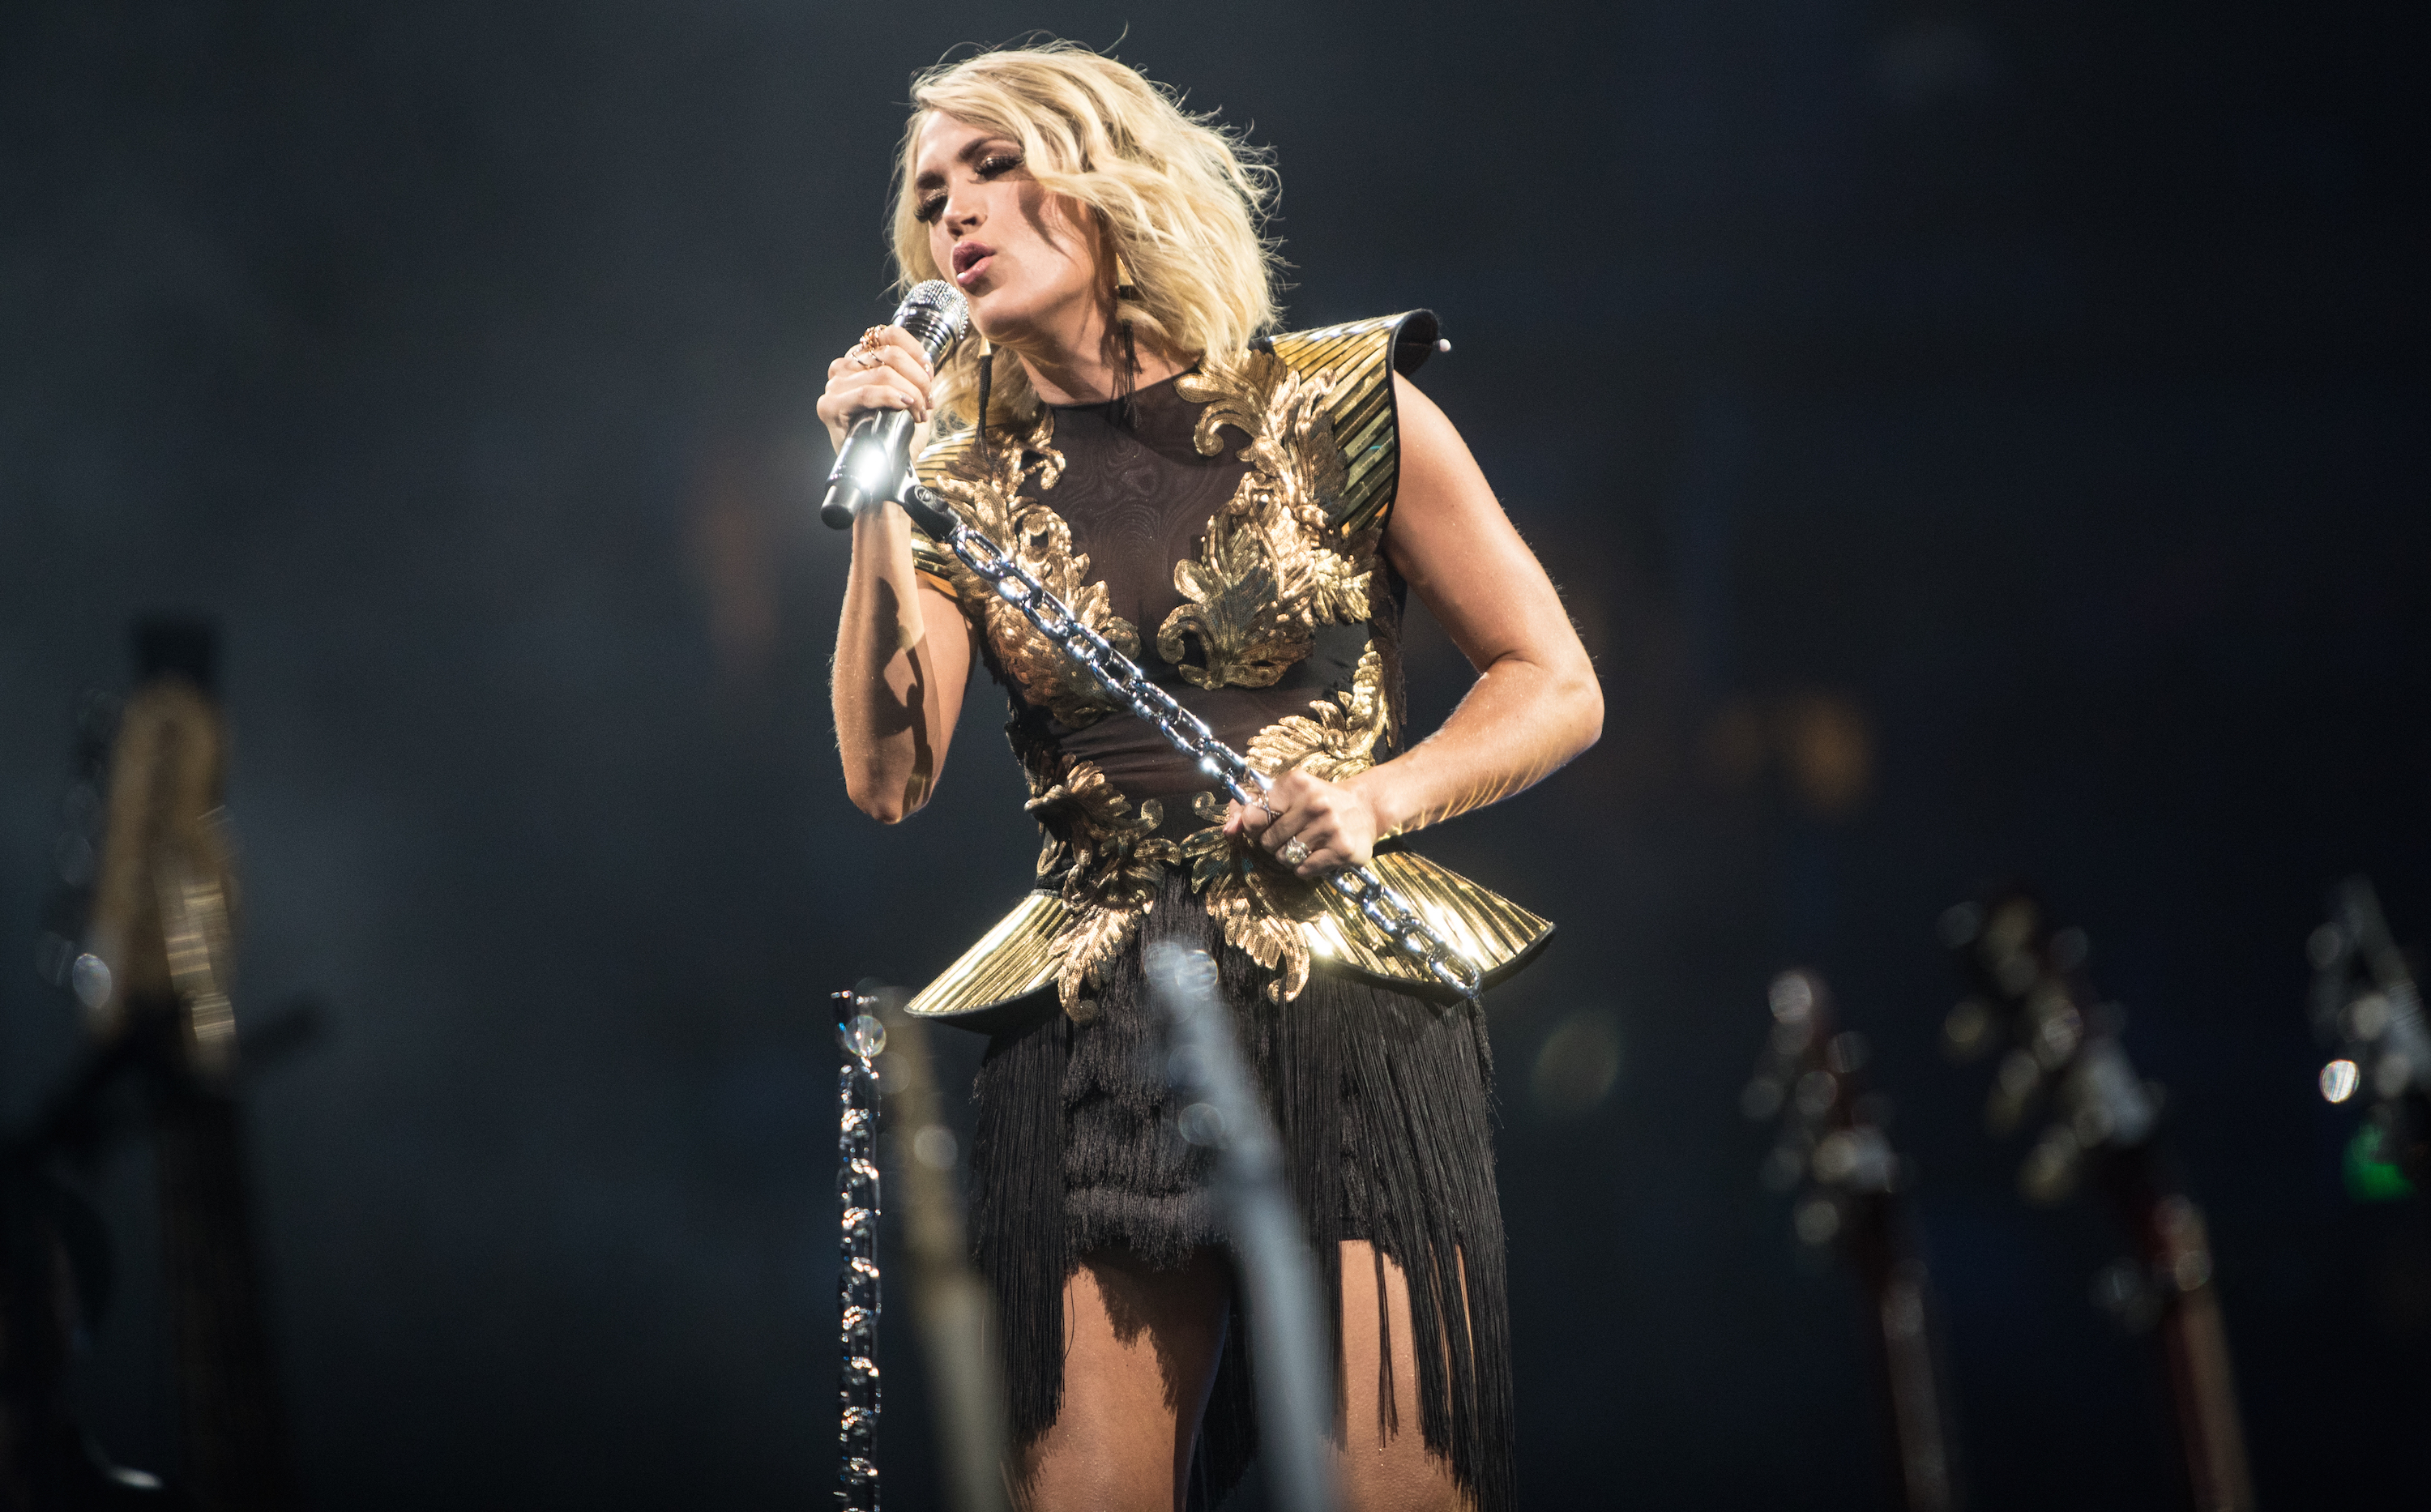 Carrie Underwood gives update on health, music in open letter